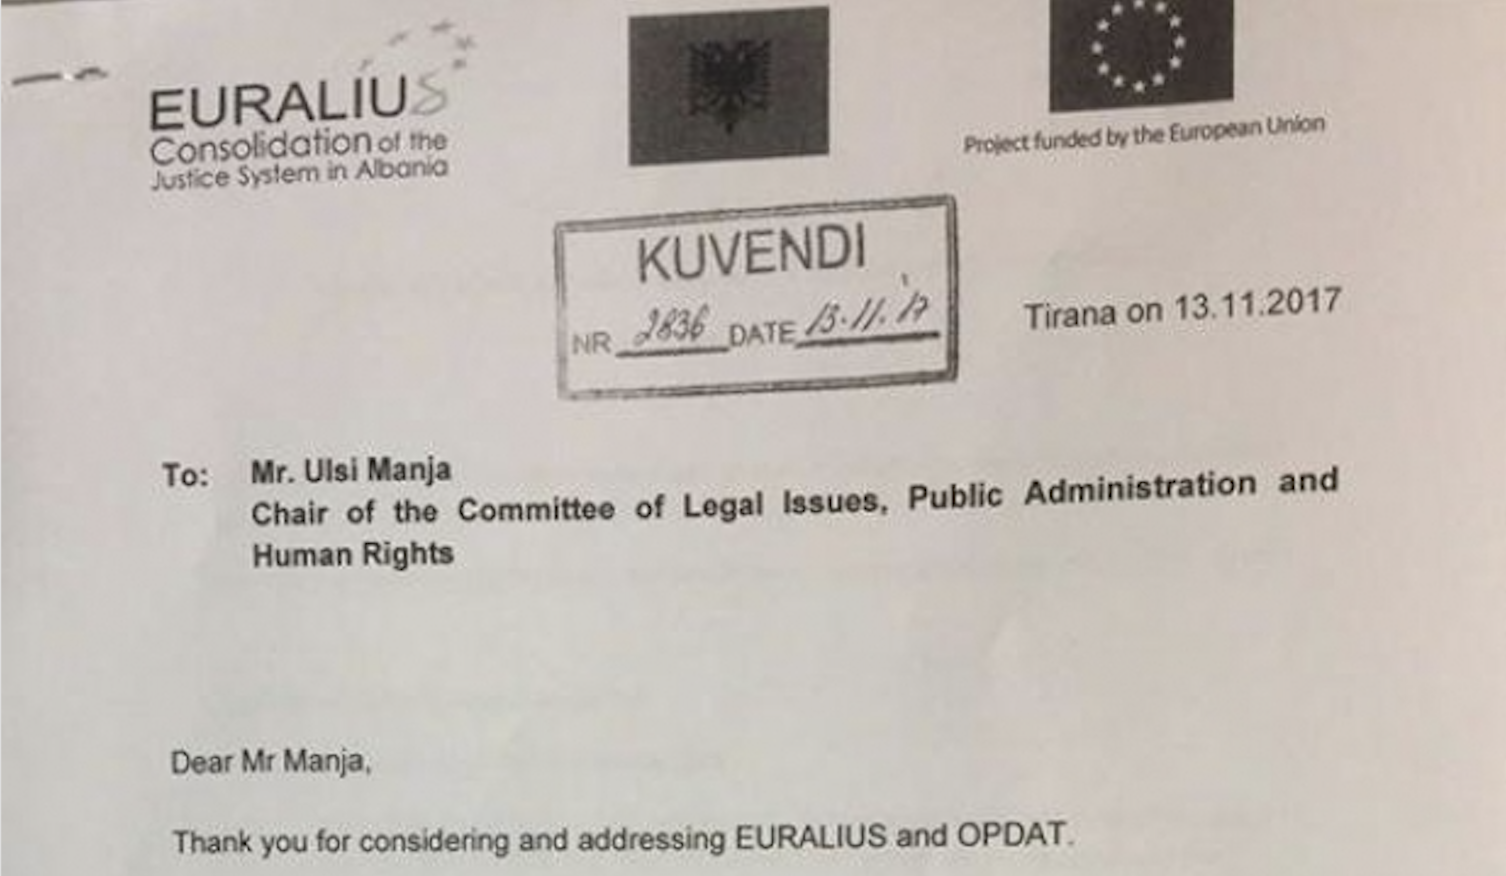 EURALIUS Hides Legal Opinion on the Temporary Prosecutor